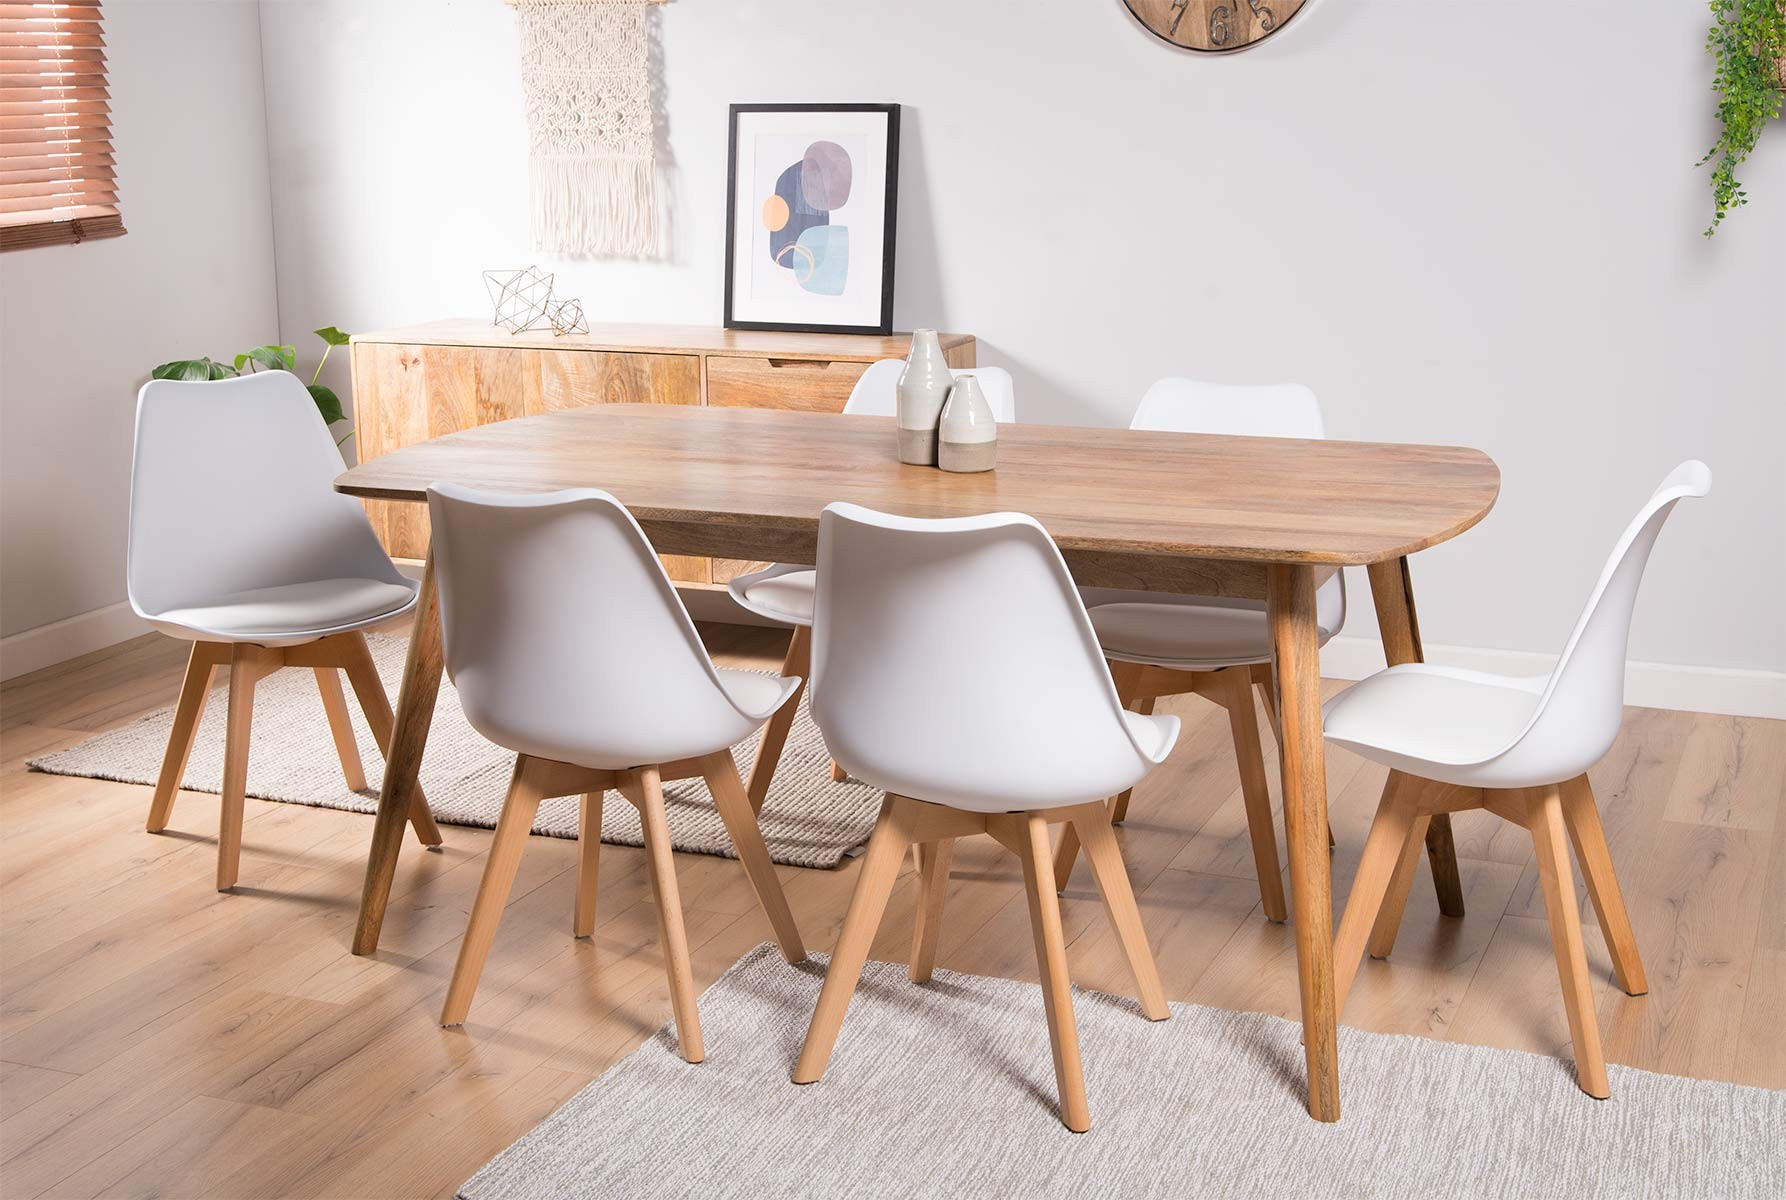 new concept 15a42 5a9cd Oslo Light Mango 6-Seater Dining Set - Scandi Chairs